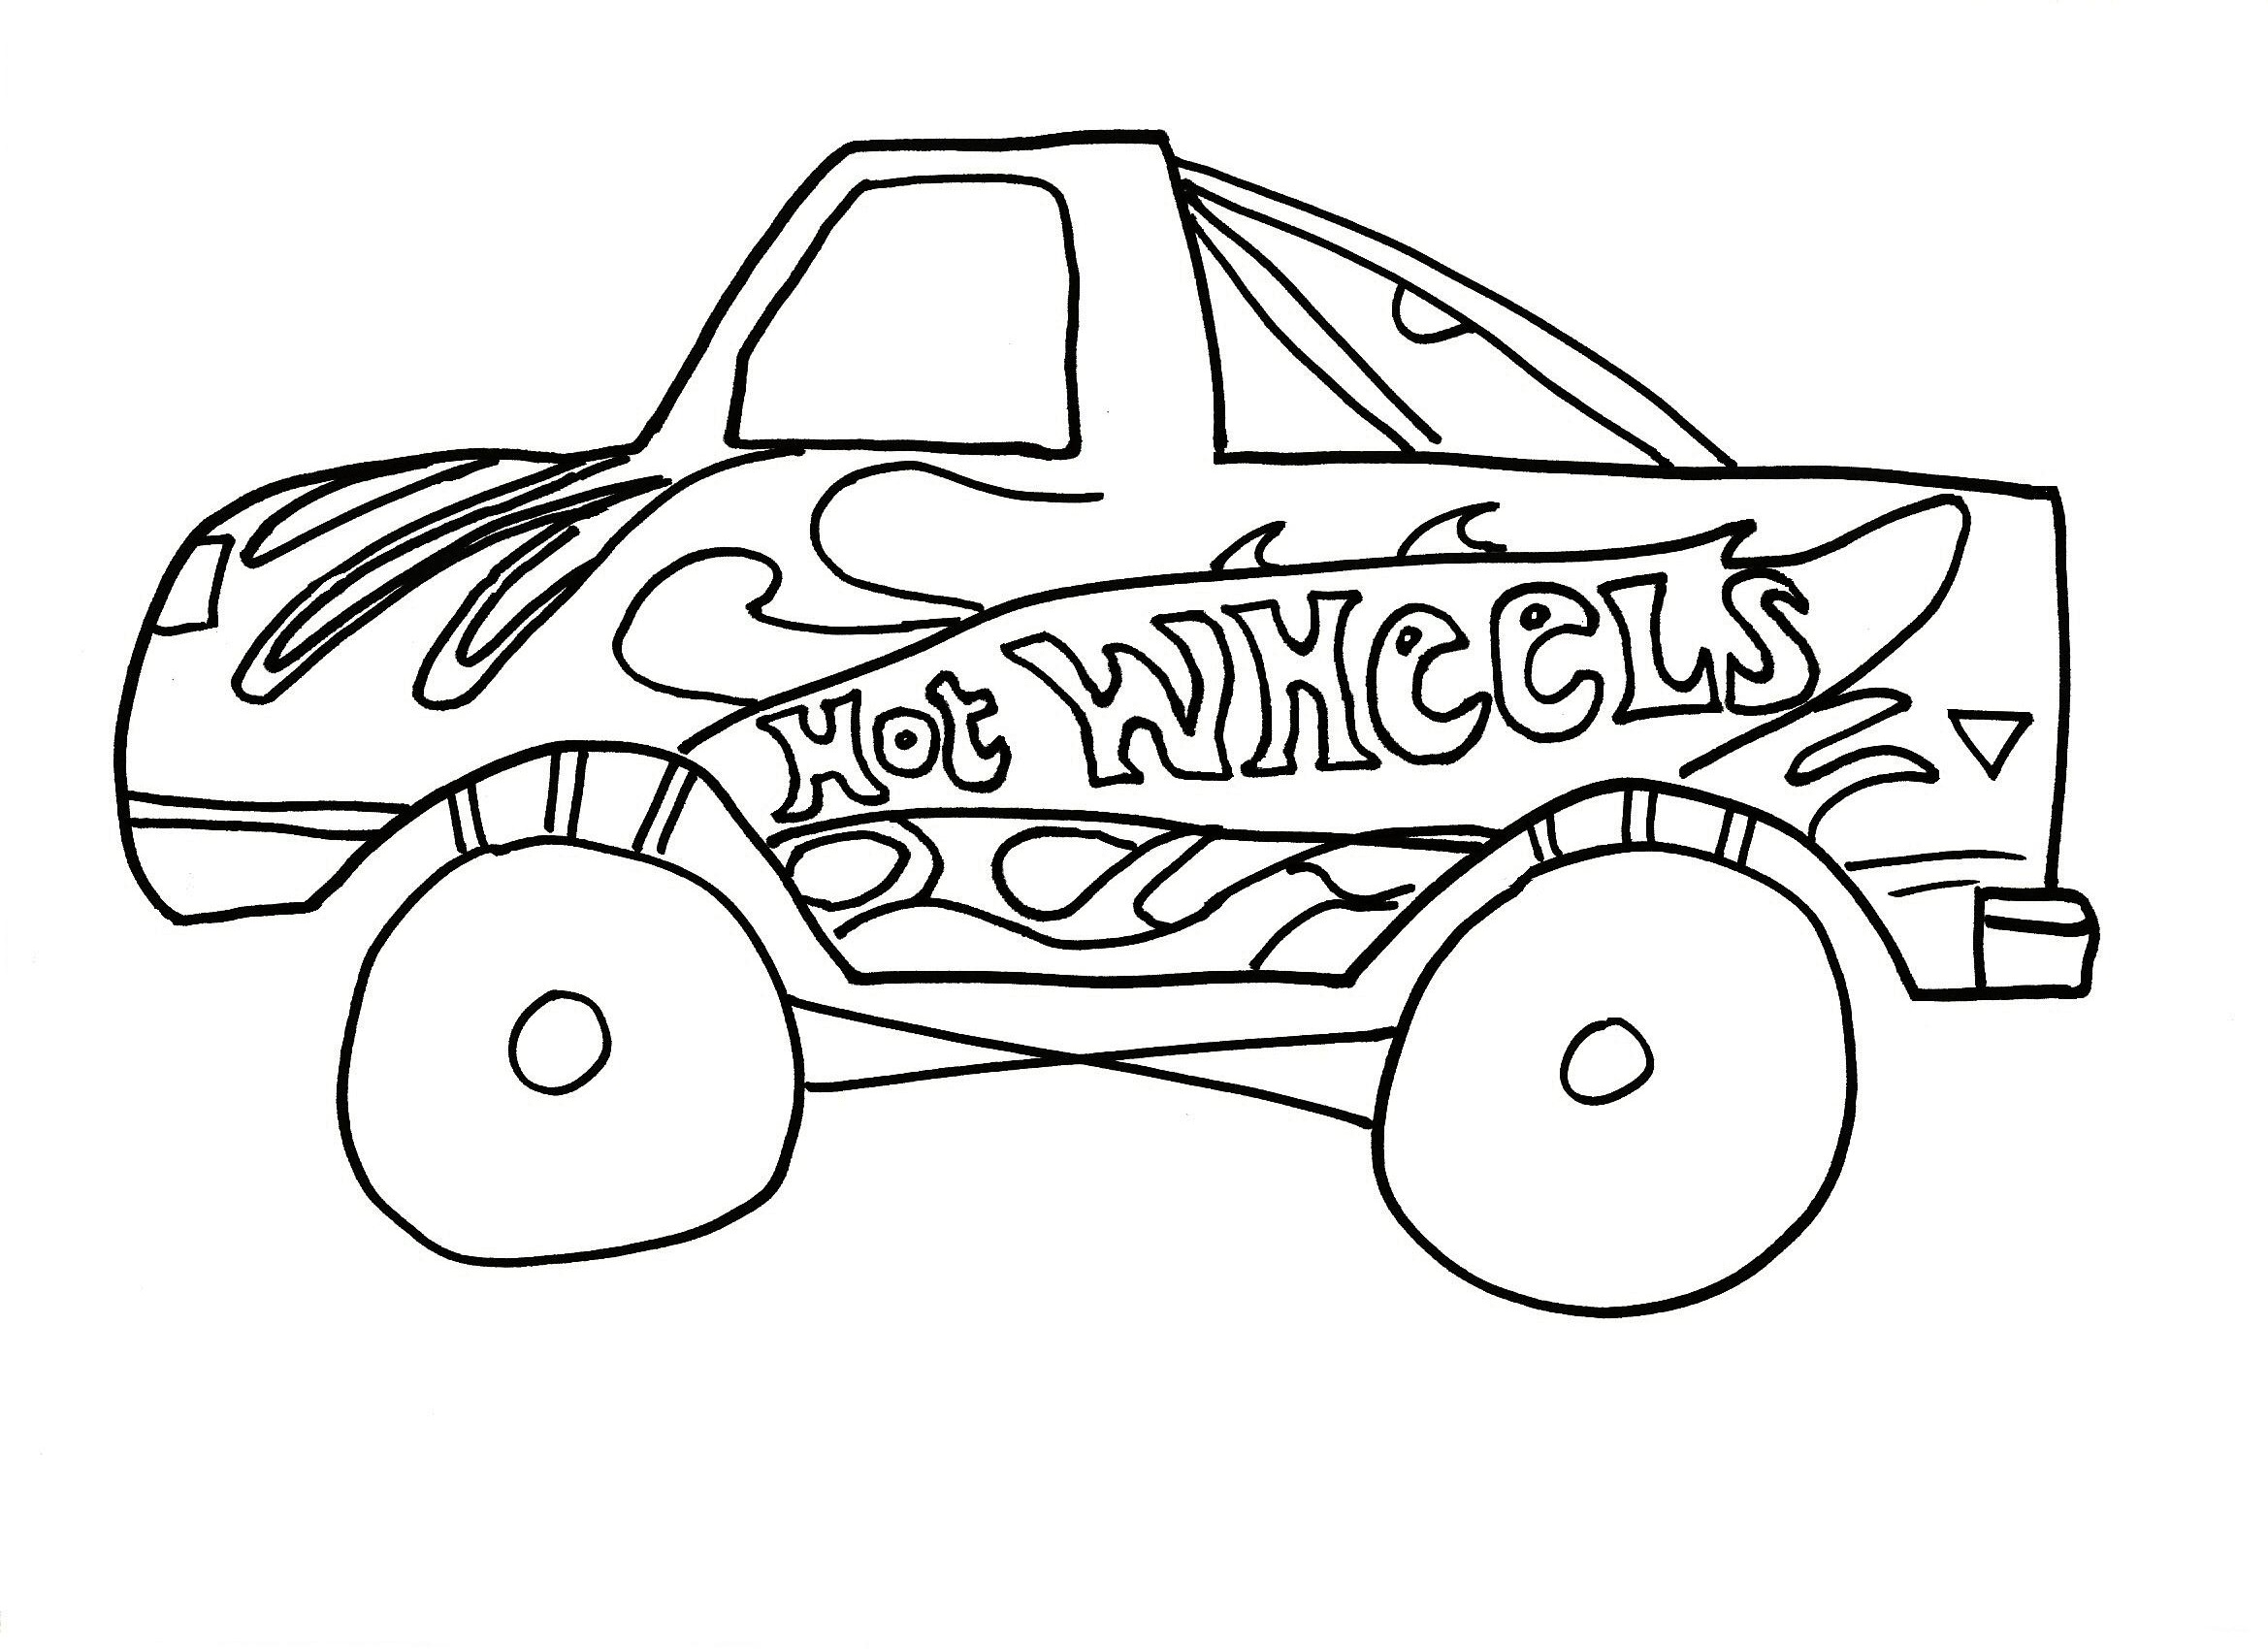 hot wheel coloring pages - photo#11